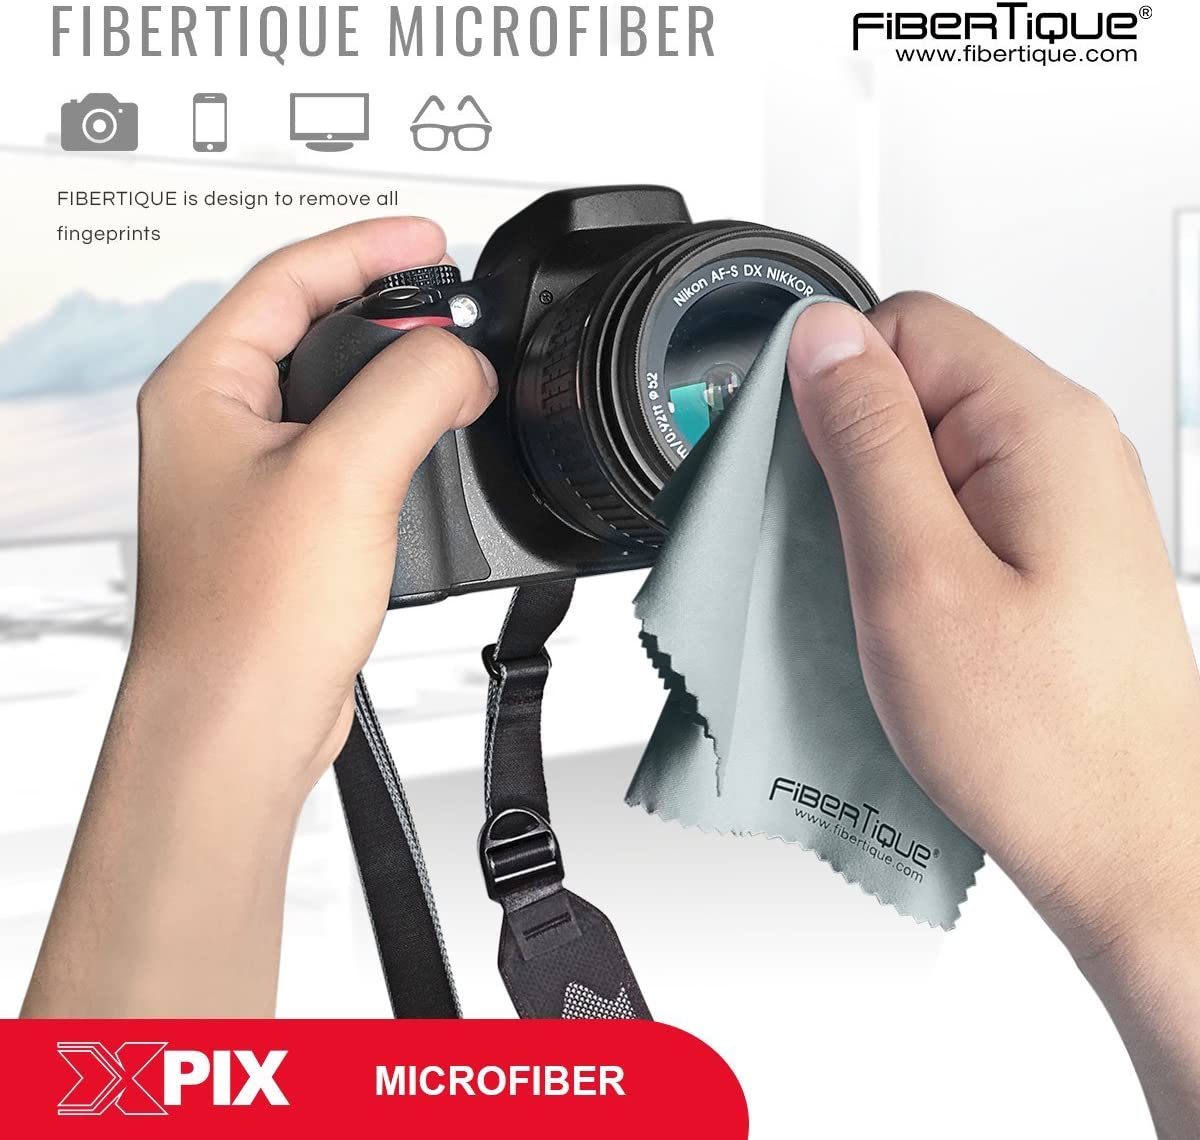 700D 650D 600D 1100D 550D 500D 58MM 2.2X Telephoto /& 0.43X Wide Angle HD w//SLR AF Power Zoom Flash /& Xpix Cleaning Accessories Professional kit for Canon Rebel T6s T6i T6 T5i T4i T3i T3 EOS